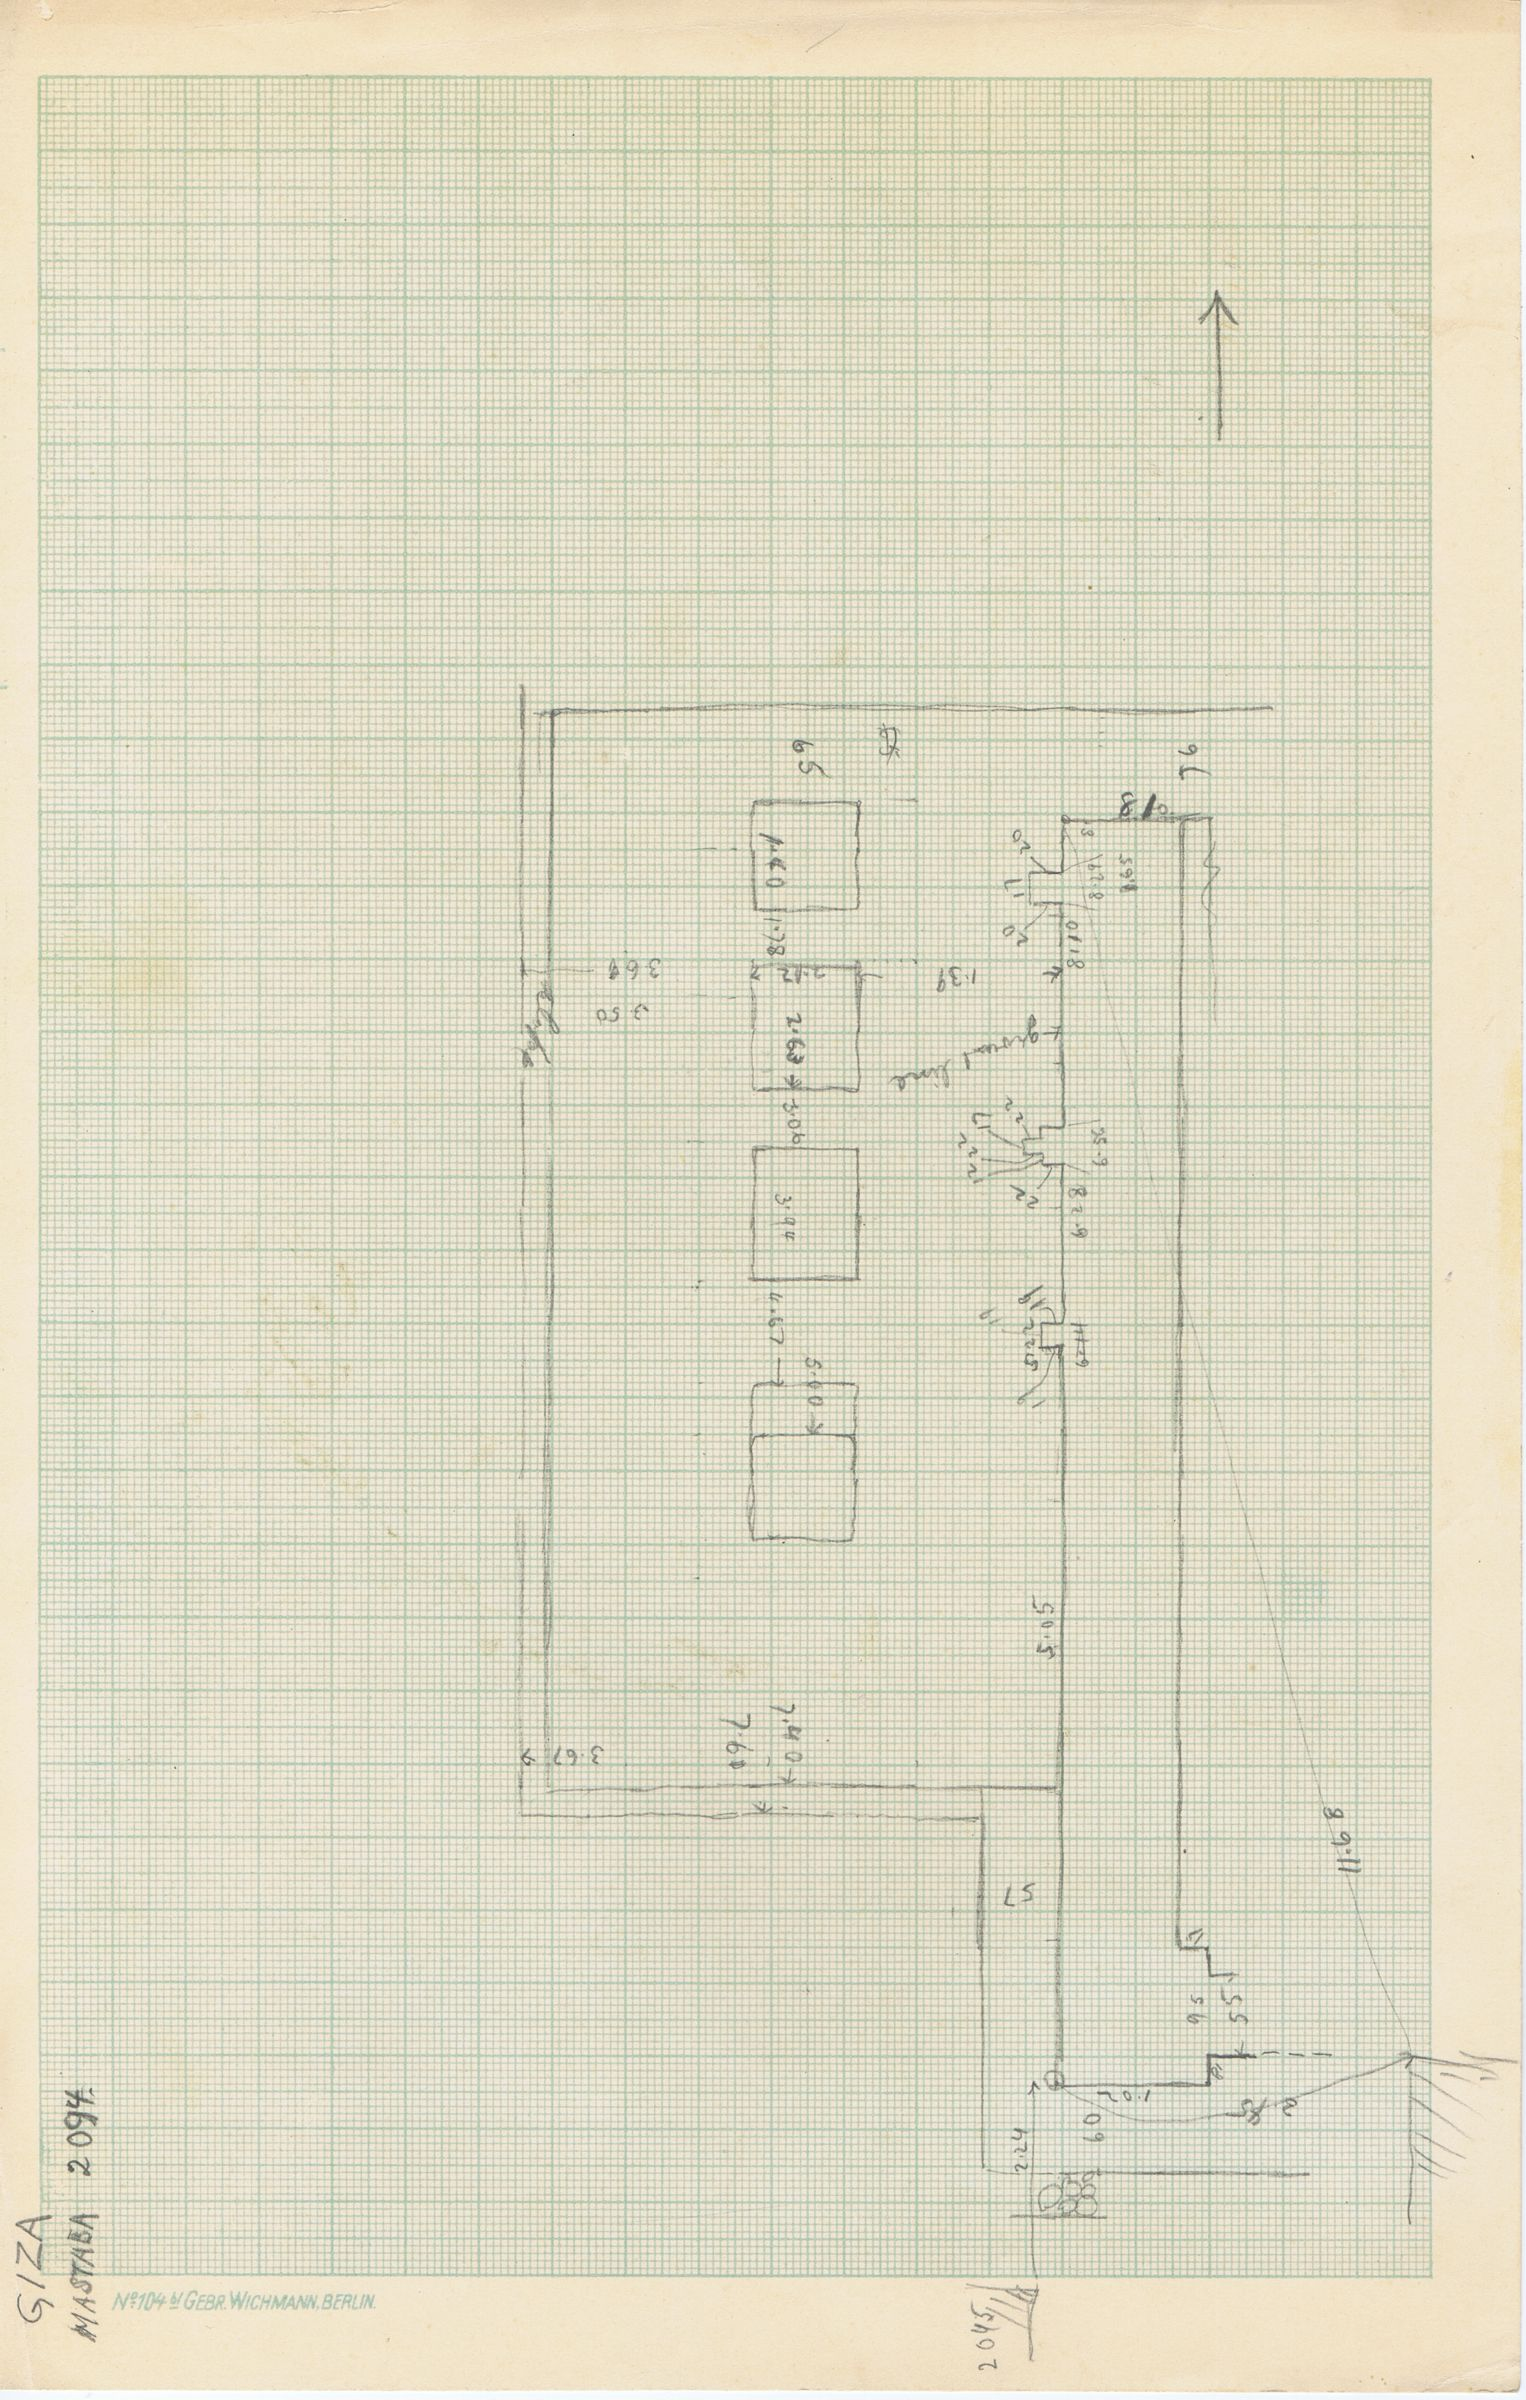 Maps and plans: Sketch plan of G 3094